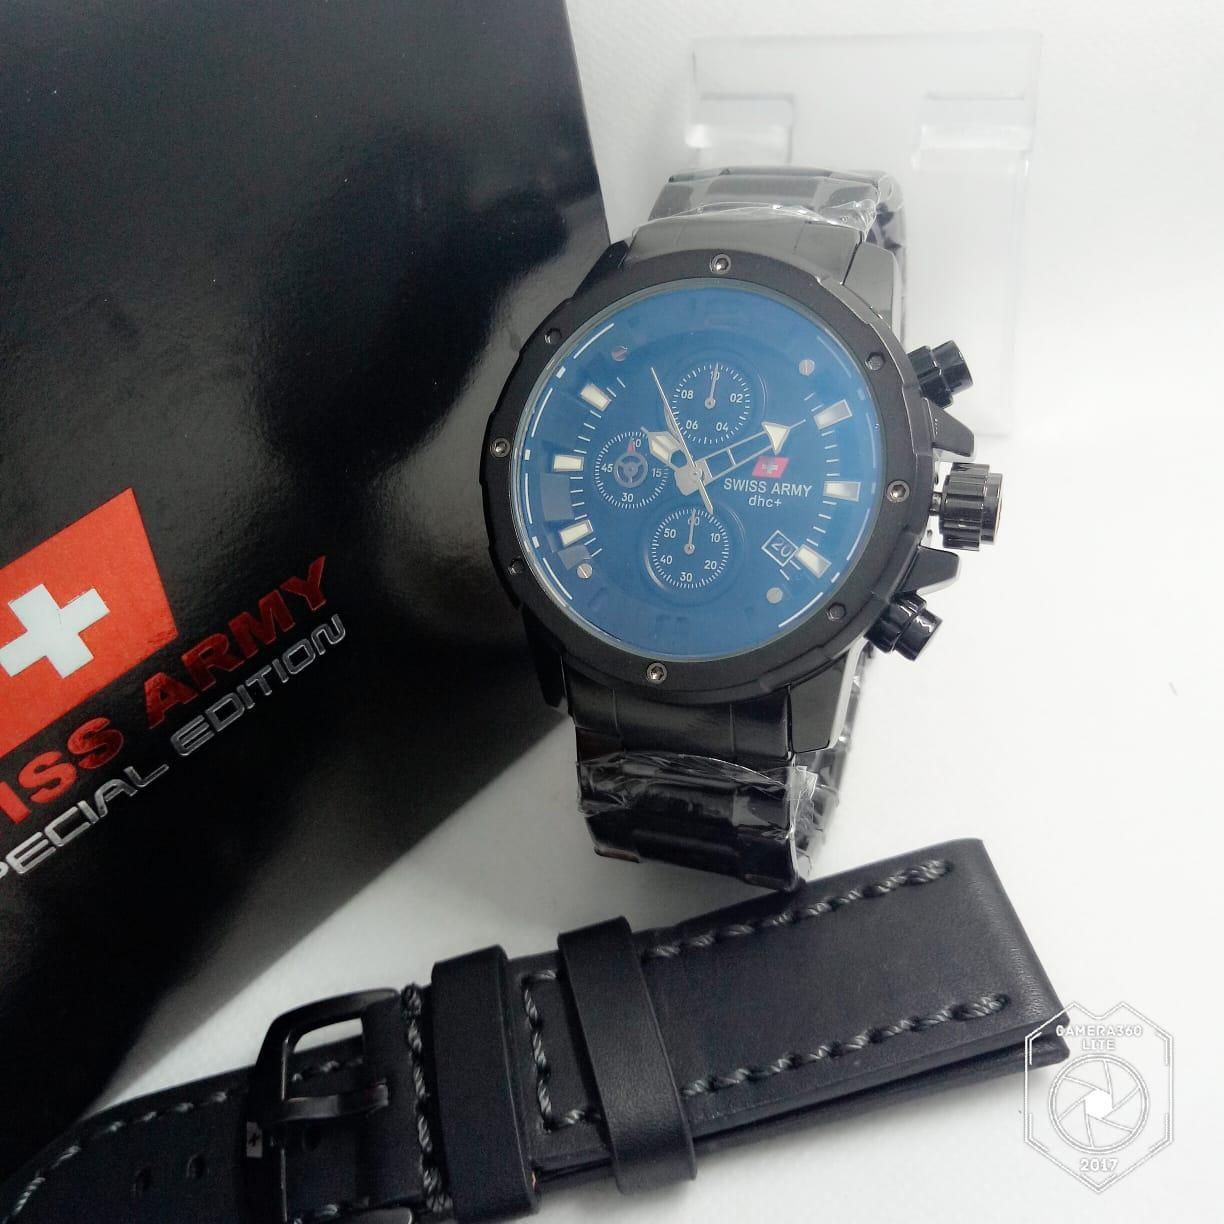 Kelebihan Jam Tangan Wanita Fashion Gc Watch Collection Hegner Swiss Leather Original Army Limited Edition Sa 303 Pria